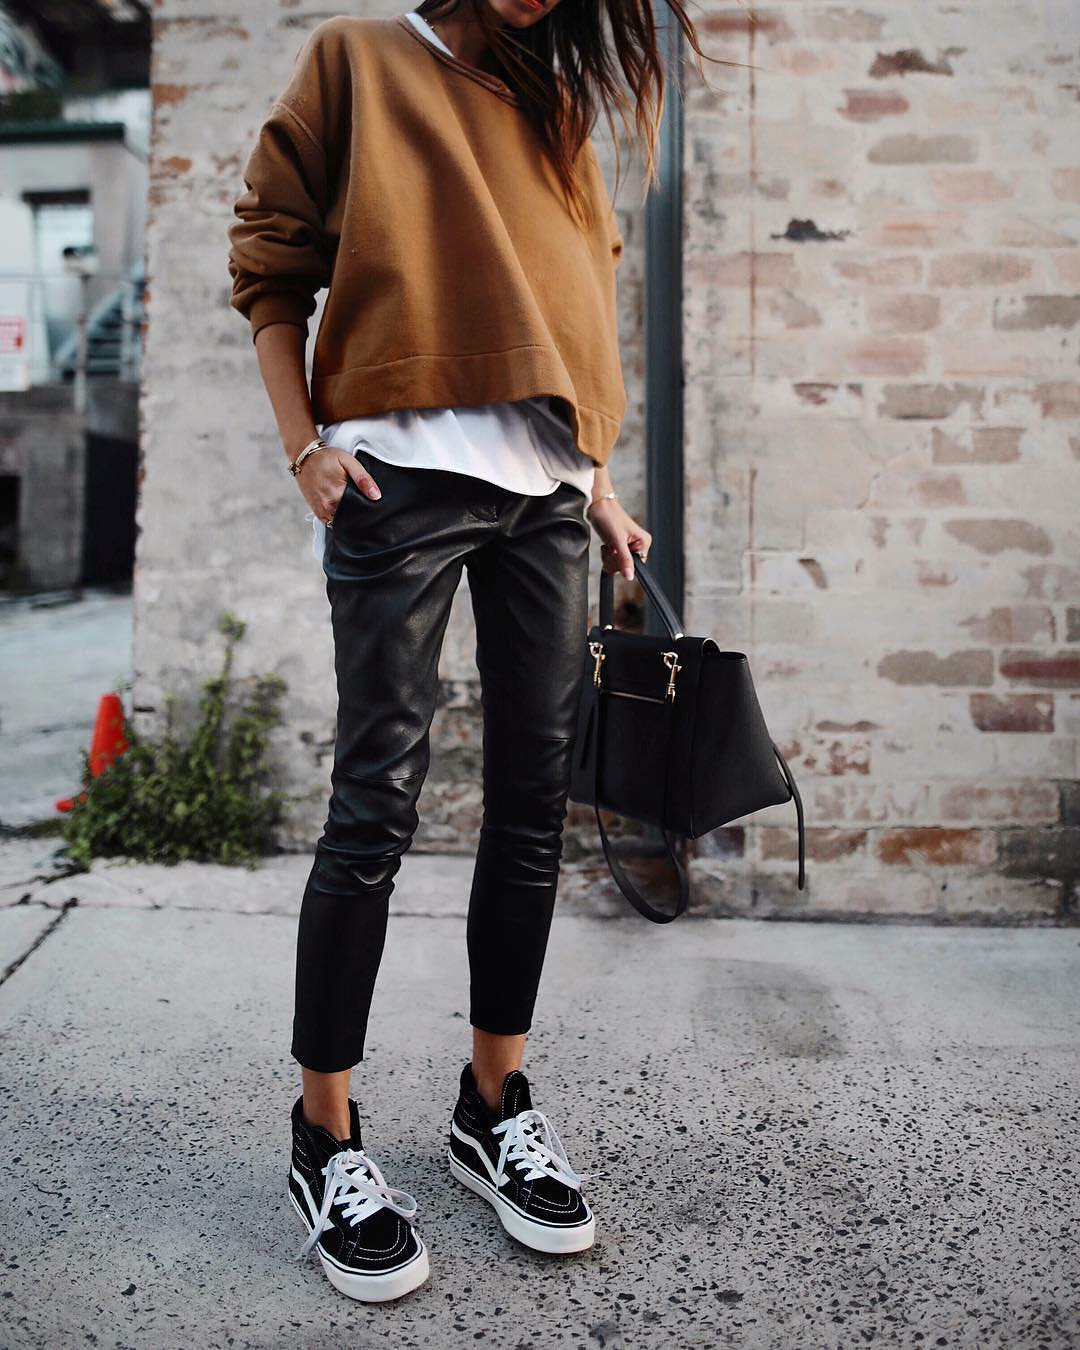 Brown Sweatshirt And Black Leather Pants With Black High Top Sneakers For Fall 2021